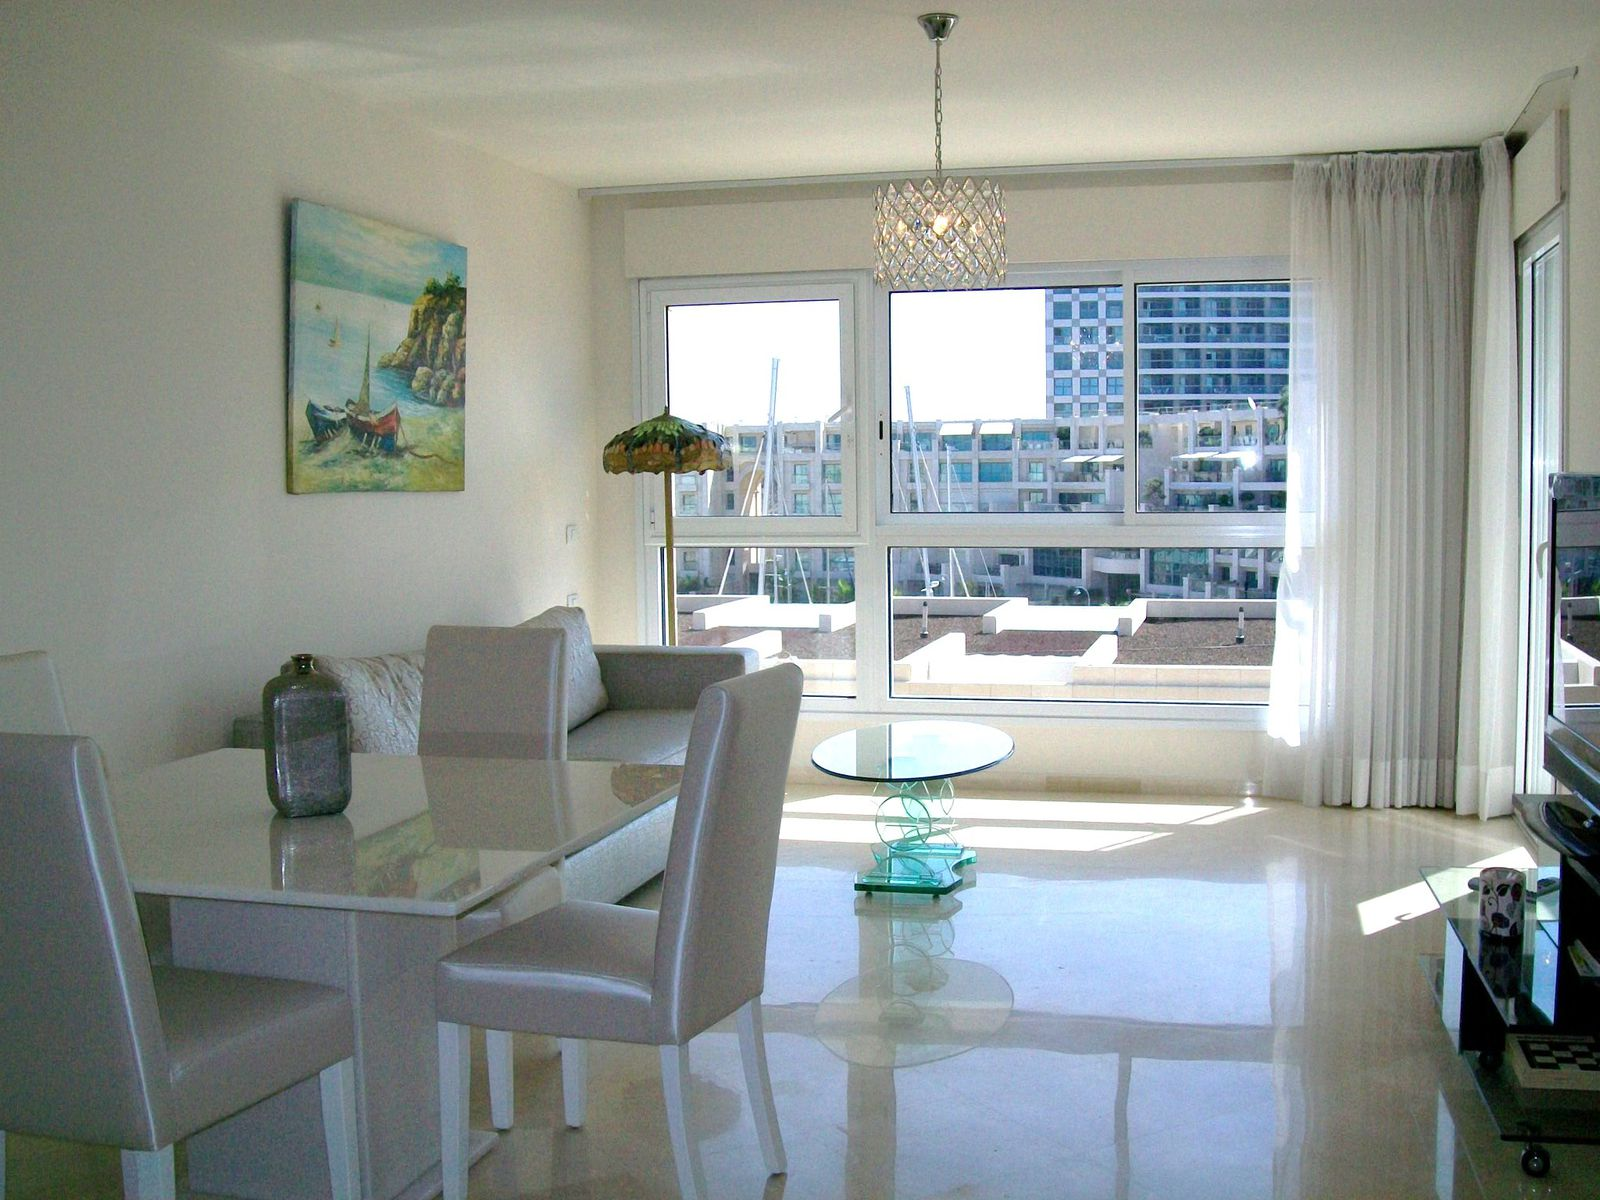 apt 4 2 rooms apartment in the island residence herzliya holiday apartments rentals. Black Bedroom Furniture Sets. Home Design Ideas